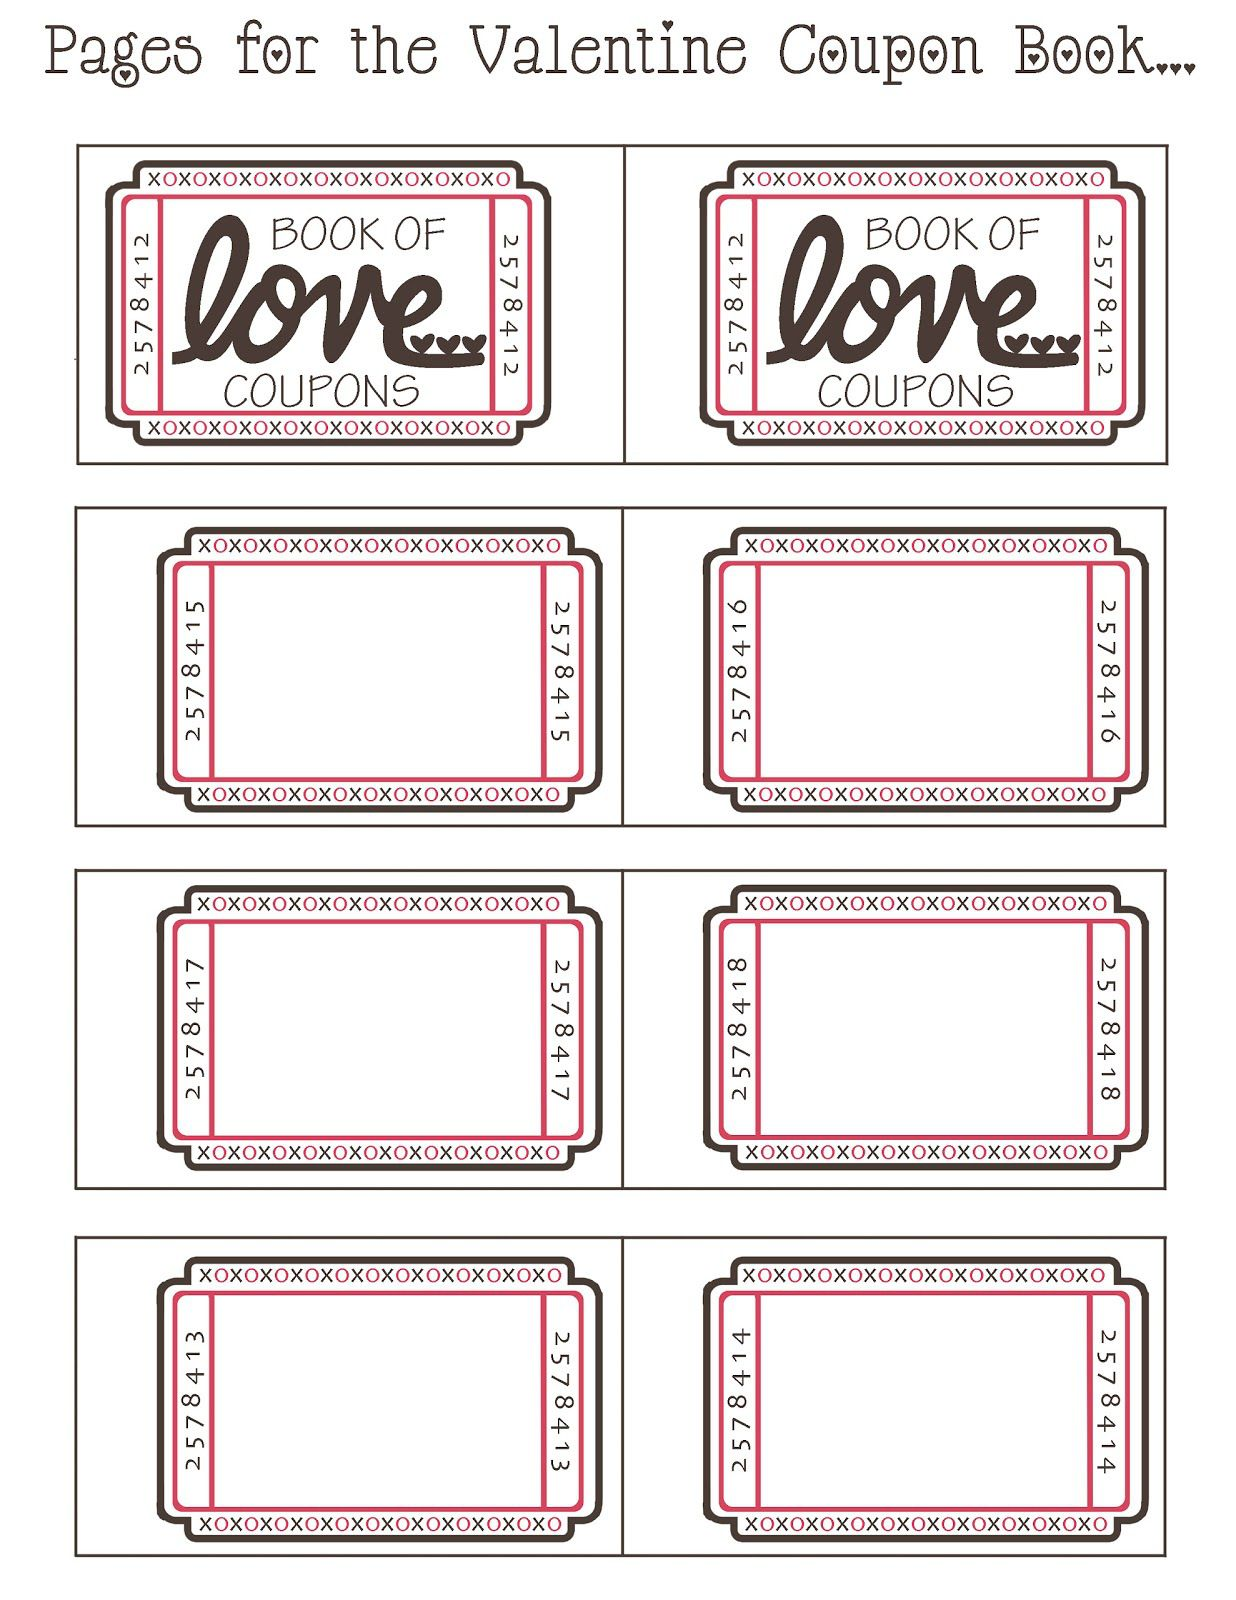 coupon book ideas for husband. blank love coupon templates printable